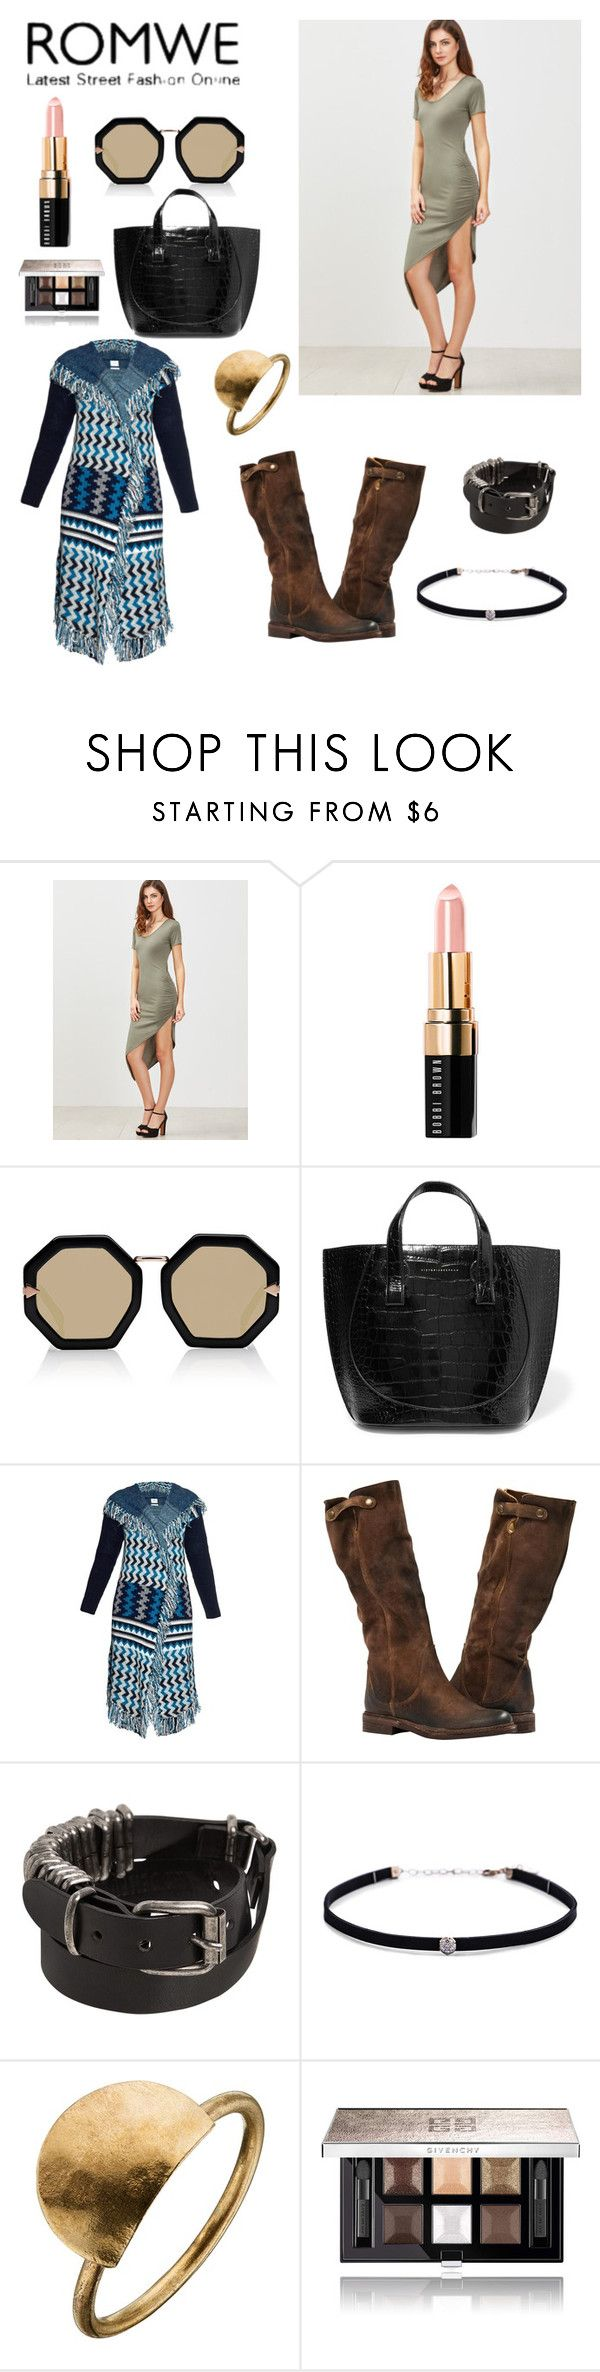 """Untitled #758"" by spectrearcane ❤ liked on Polyvore featuring Bobbi Brown Cosmetics, Karen Walker, Victoria Beckham, Banjo & Matilda, Ann Demeulemeester, Carbon & Hyde, People Tree and Givenchy"